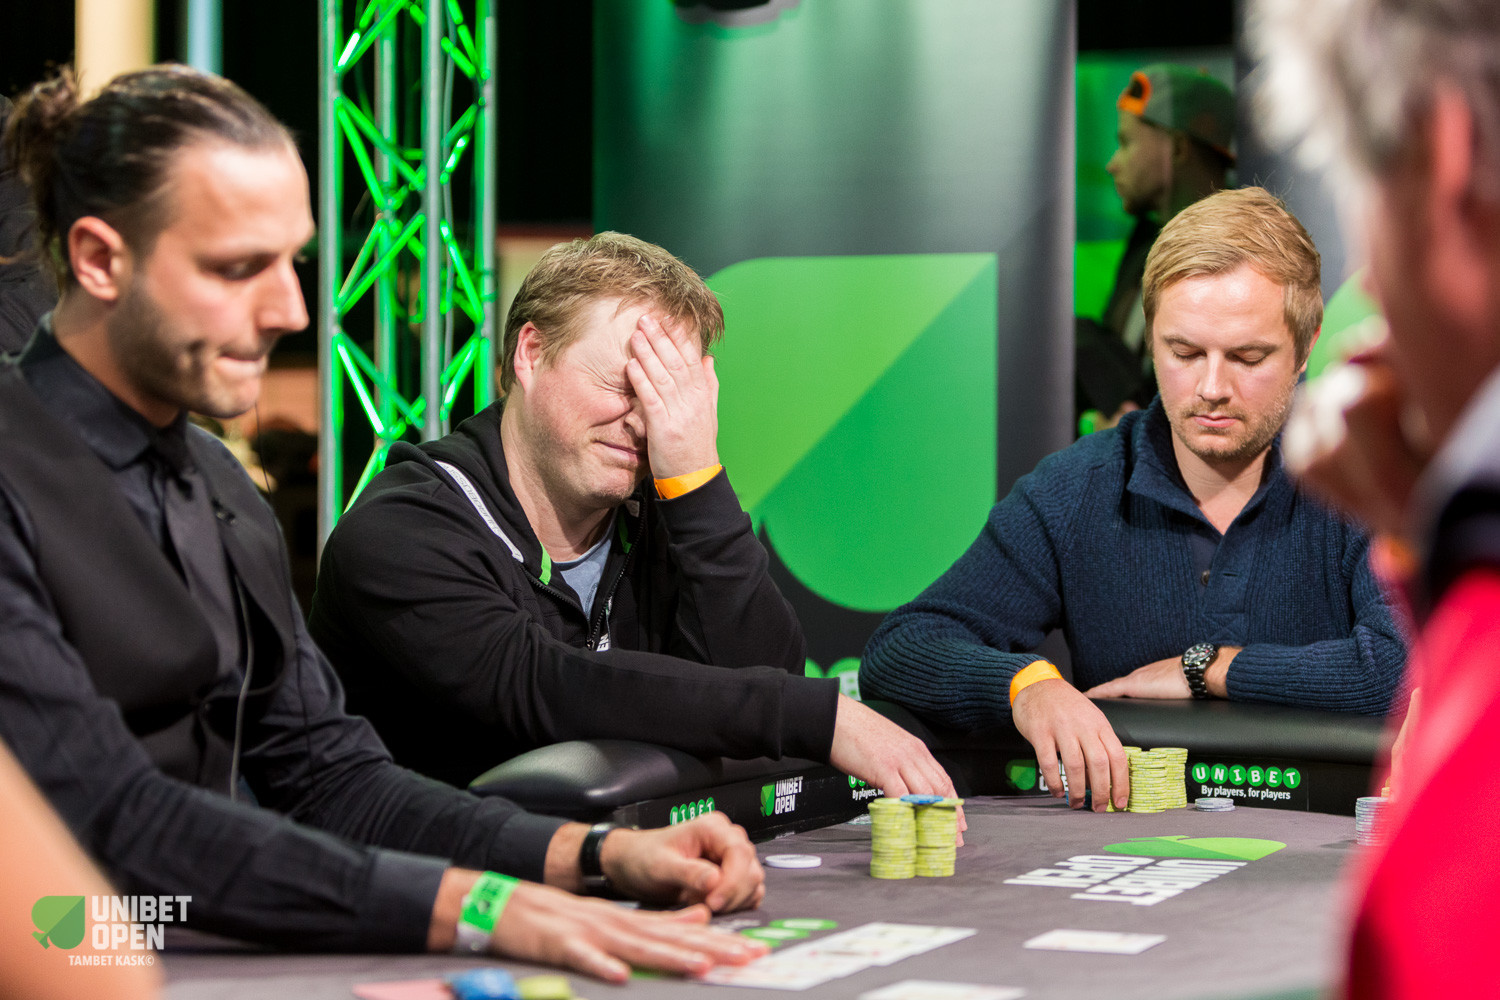 Training Your Brain: Could Your Poker Game Use a Little CBT?